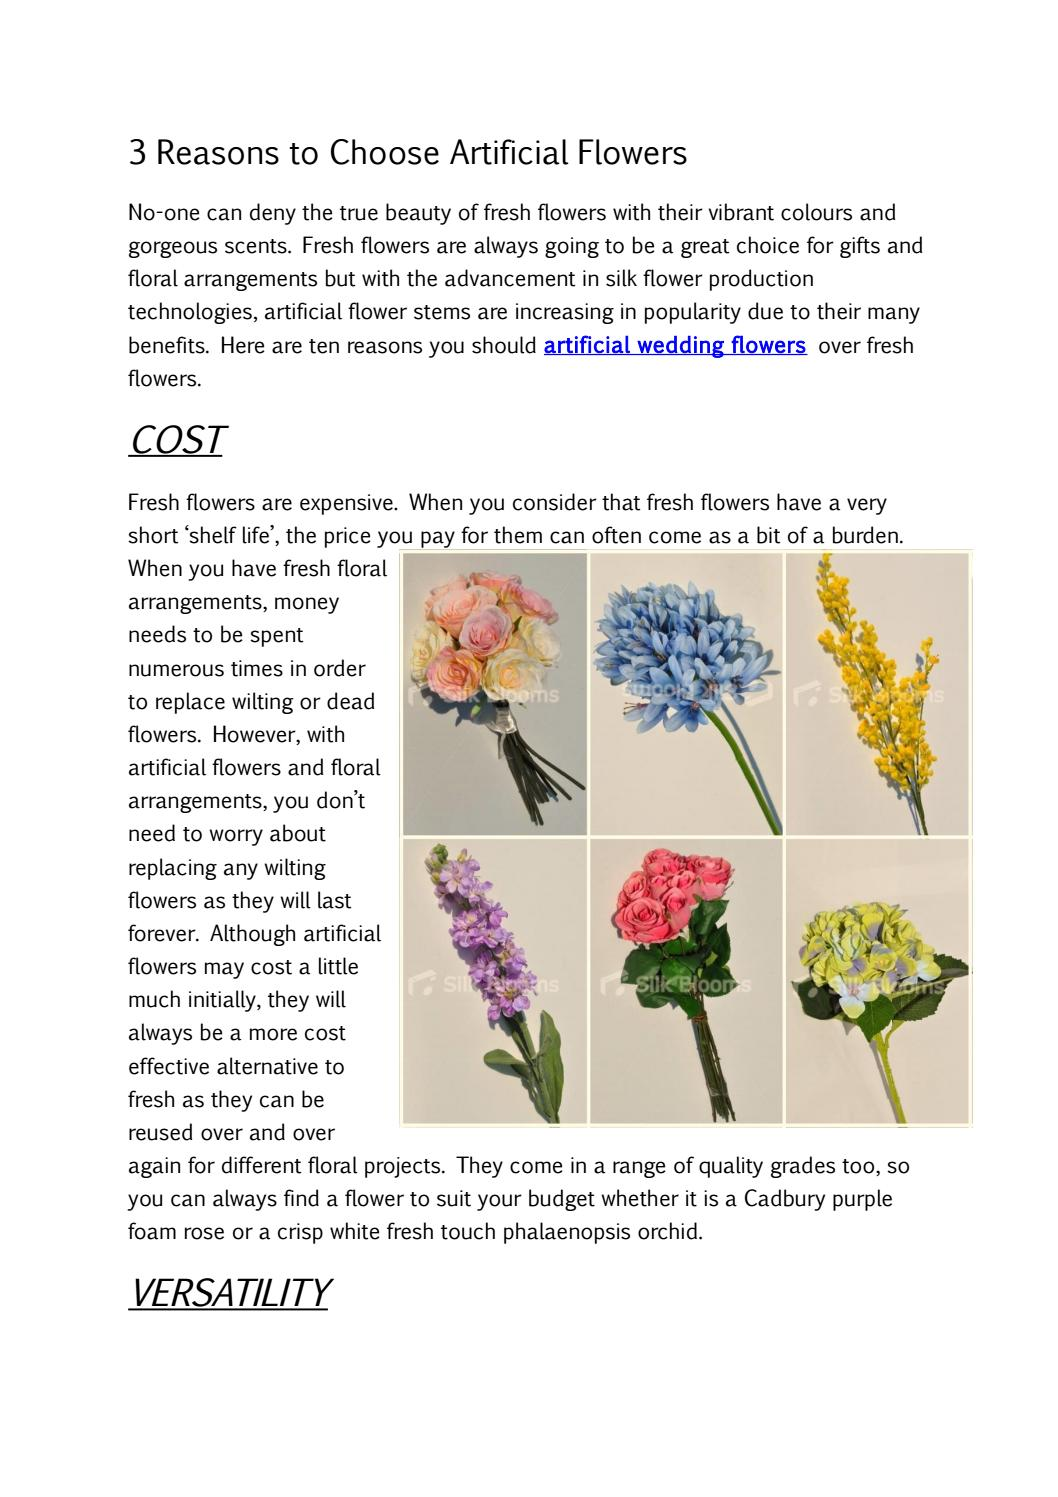 How much do fake flowers cost for a wedding flowers healthy 3 reasons to choose artificial flowers by lokesh wadhwa issuu mightylinksfo